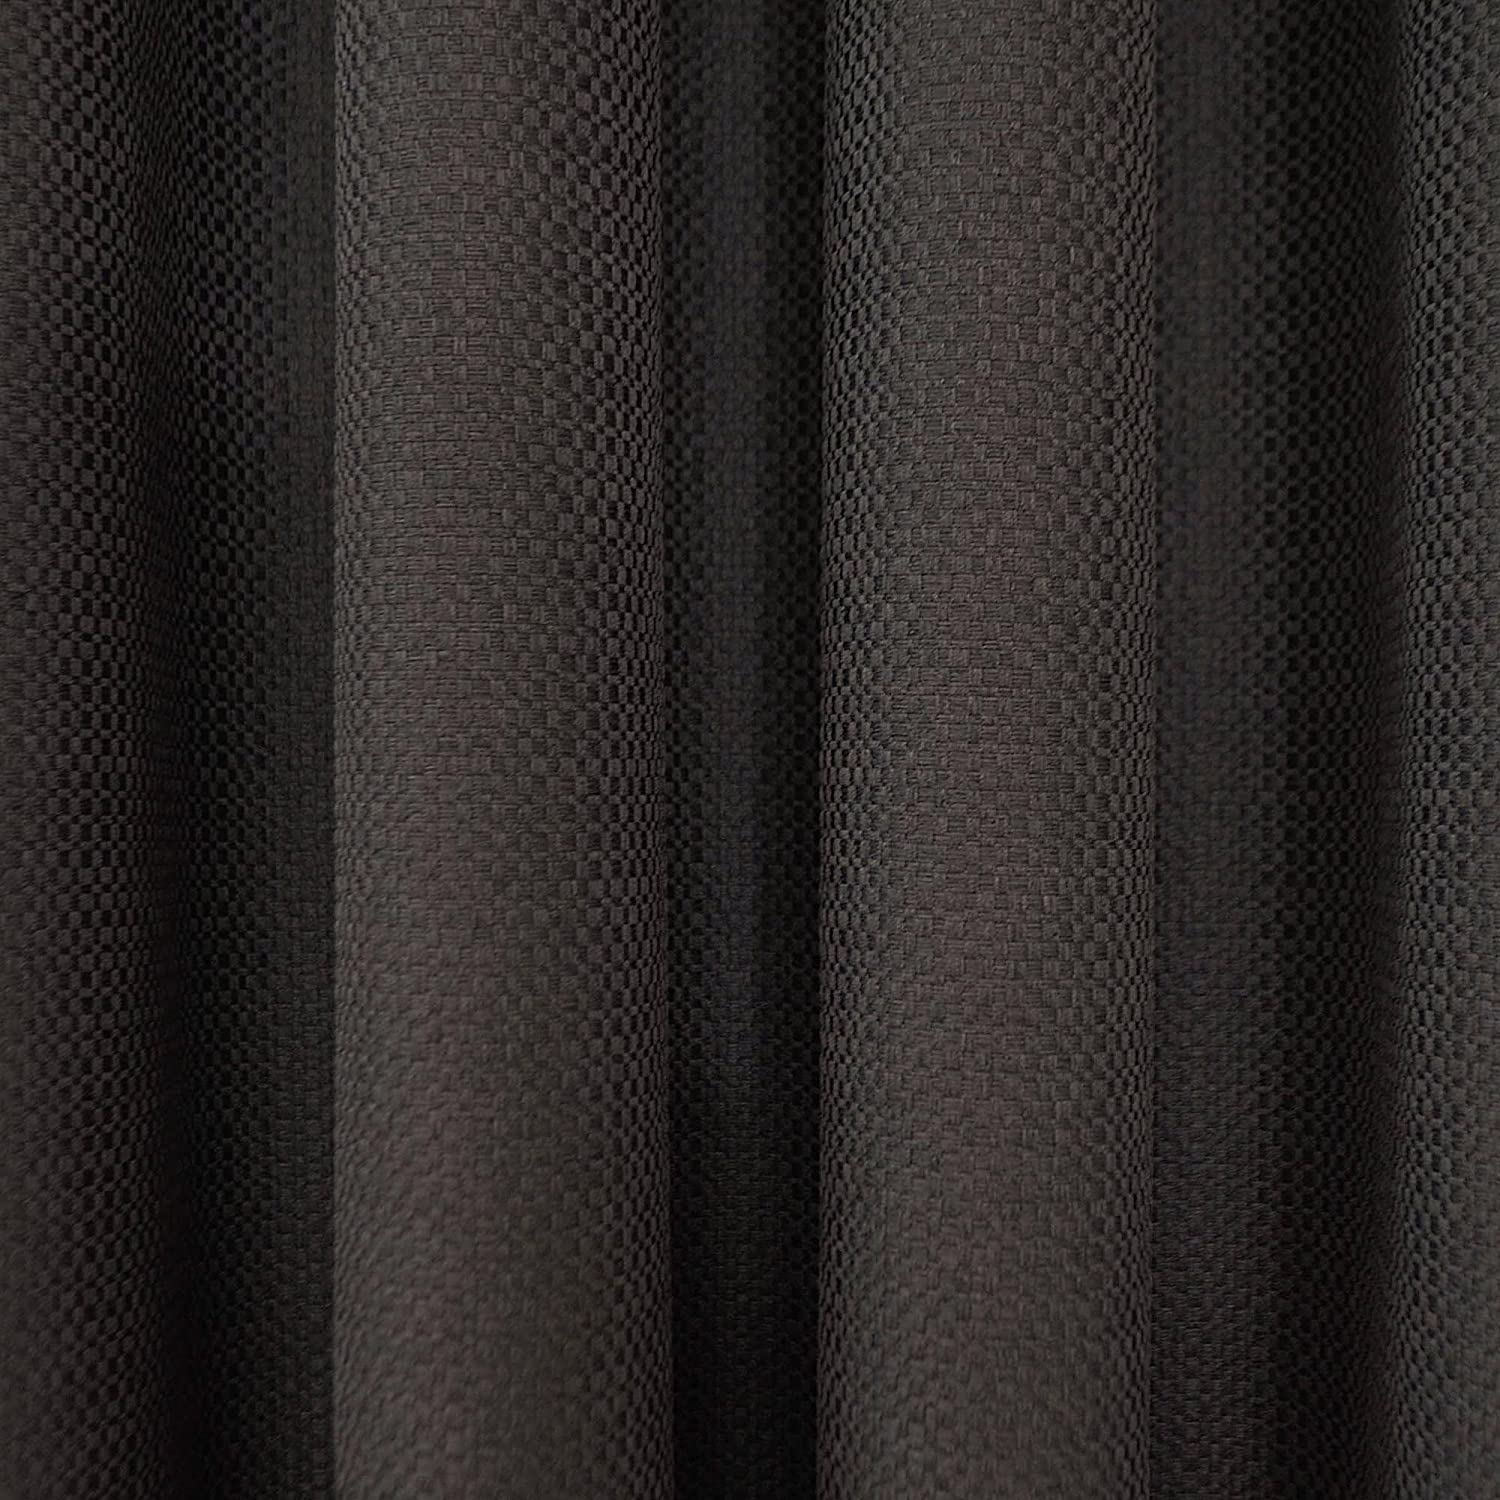 Amazon.com: Eclipse 12968052063CHR Wyndham 52-Inch by 63-Inch ... for Black Curtains Texture  113lpg